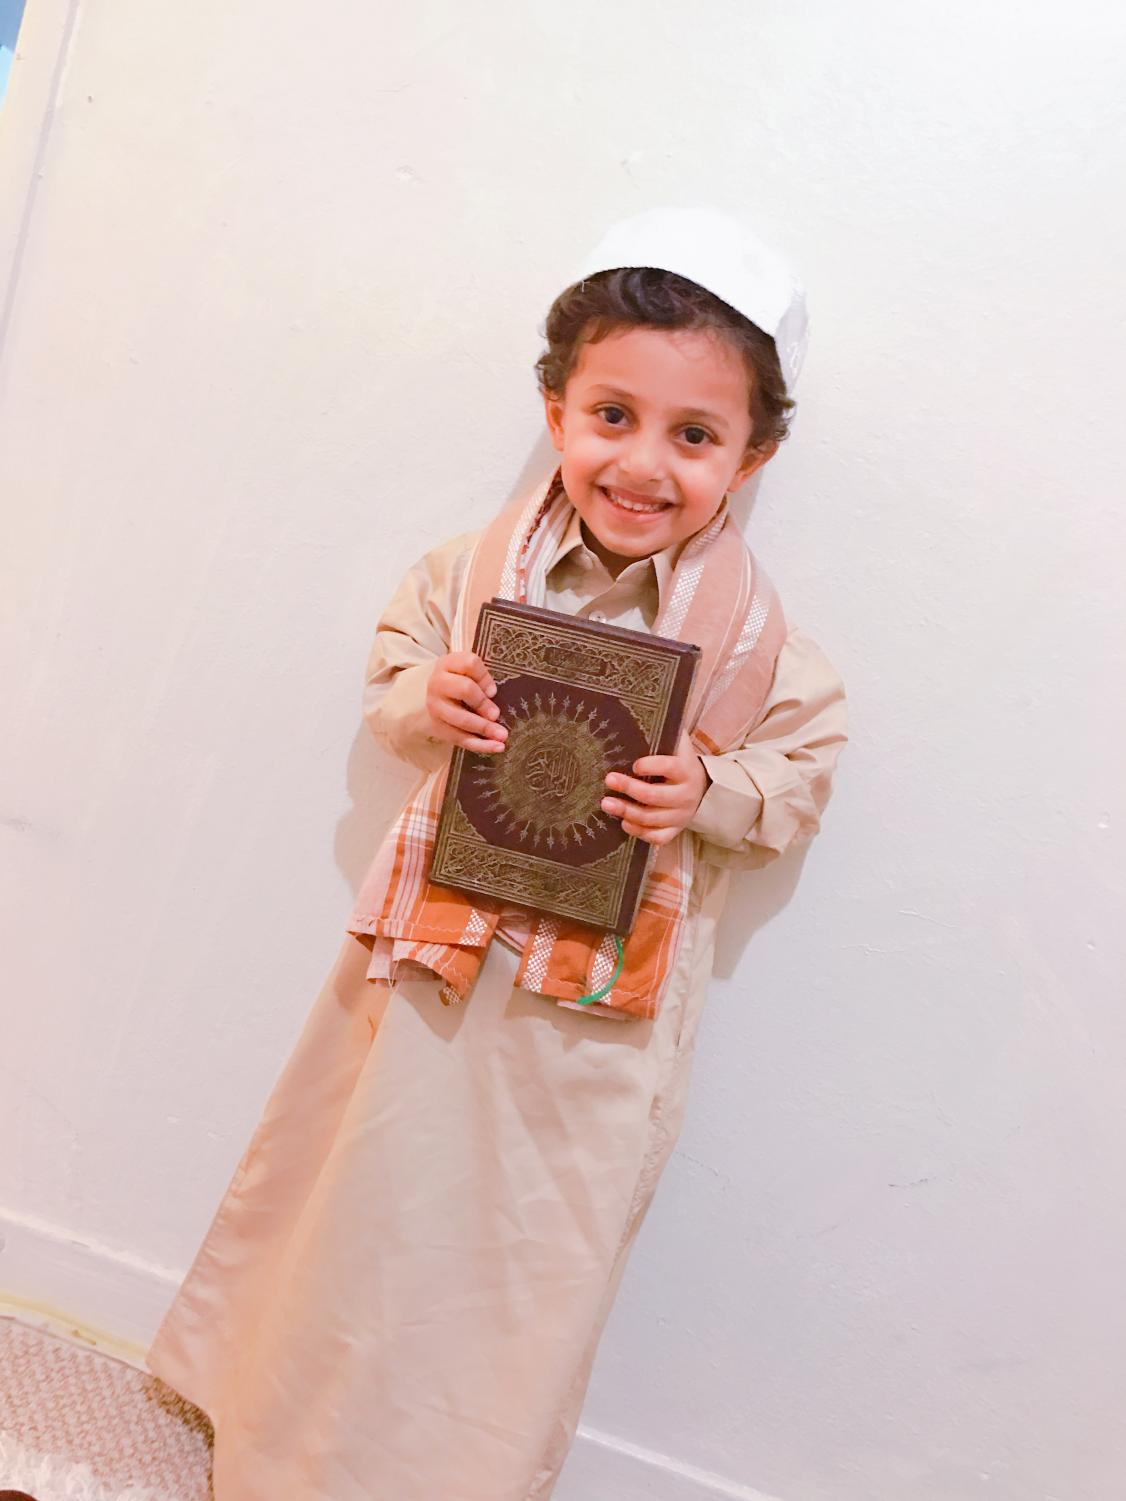 Boy wearing a Thwab and holding a Quran